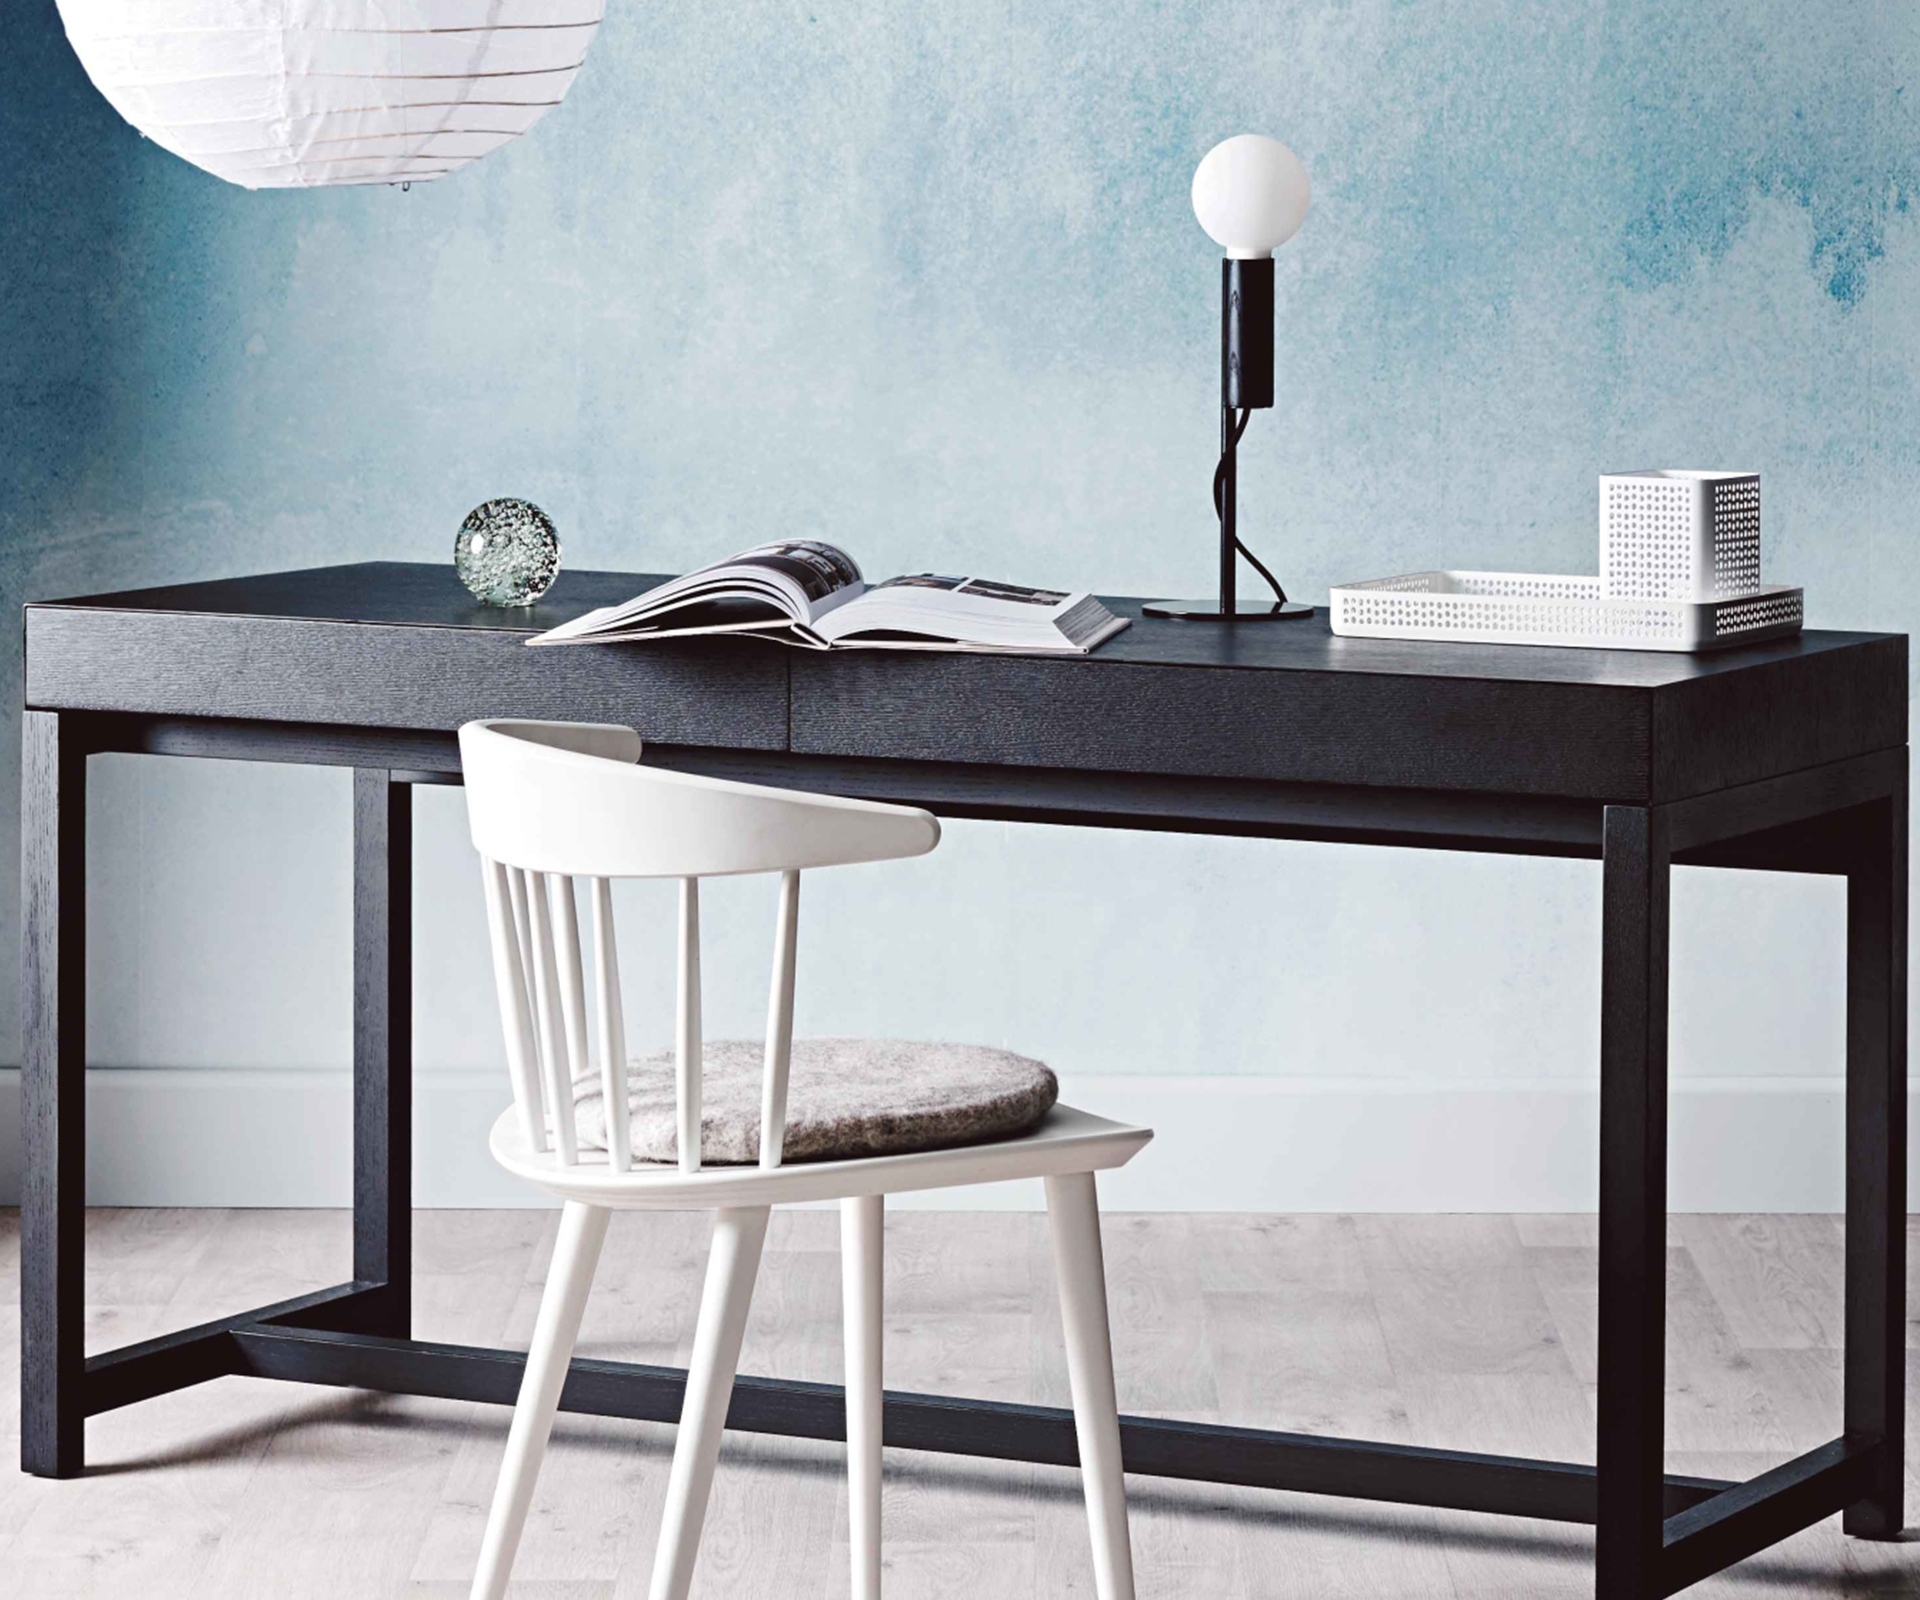 How to decorate a minimalist home office